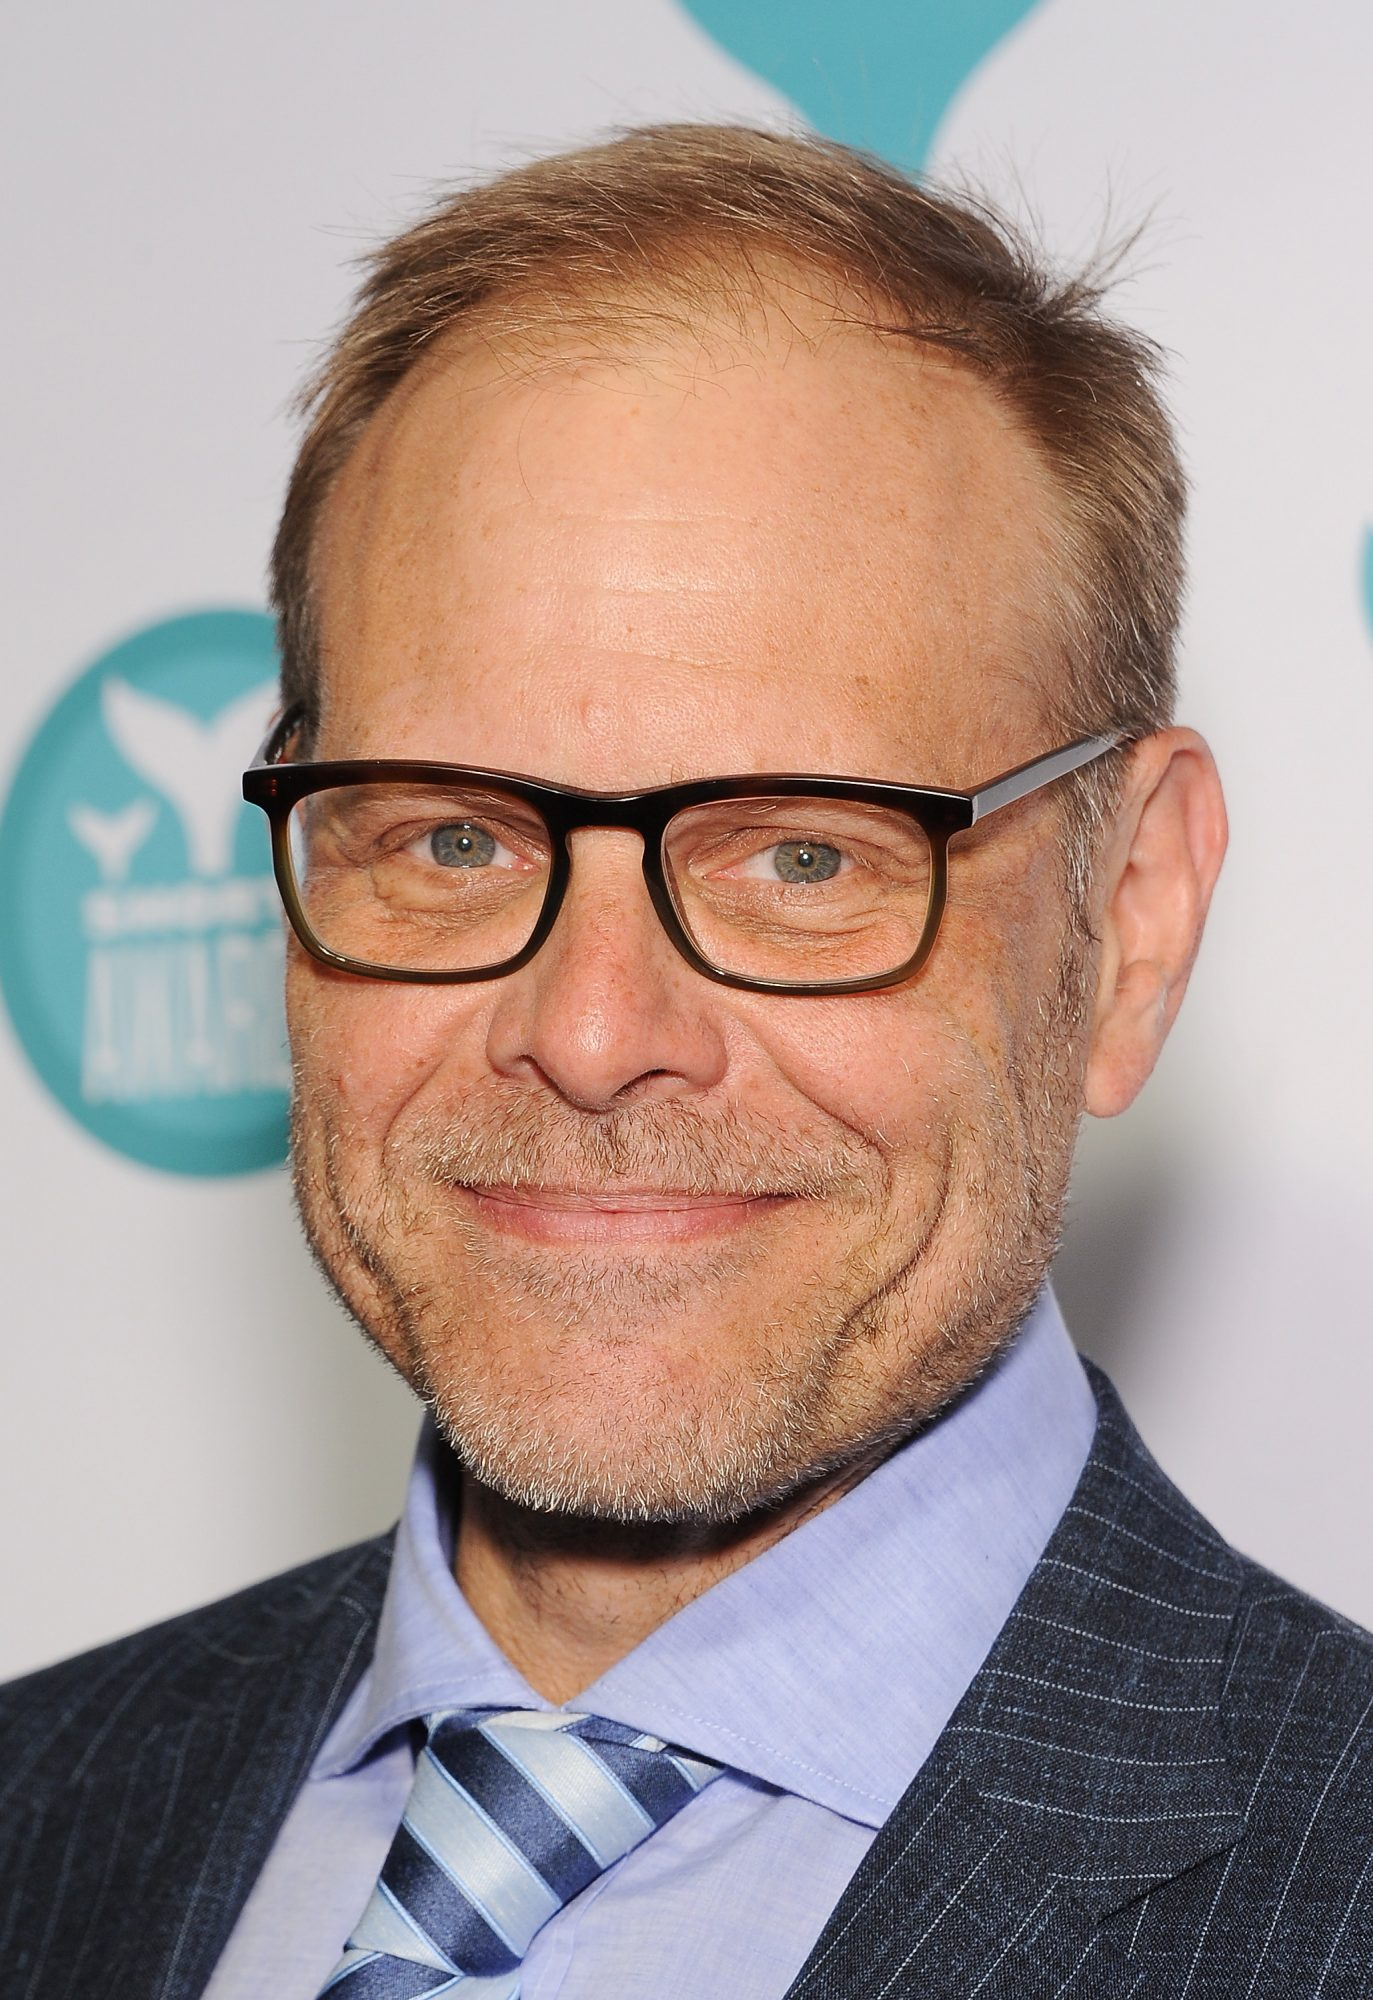 Alton Brown's Easy Recipe for Spicy Saltine Crackers is a Quarantine Game-Changer